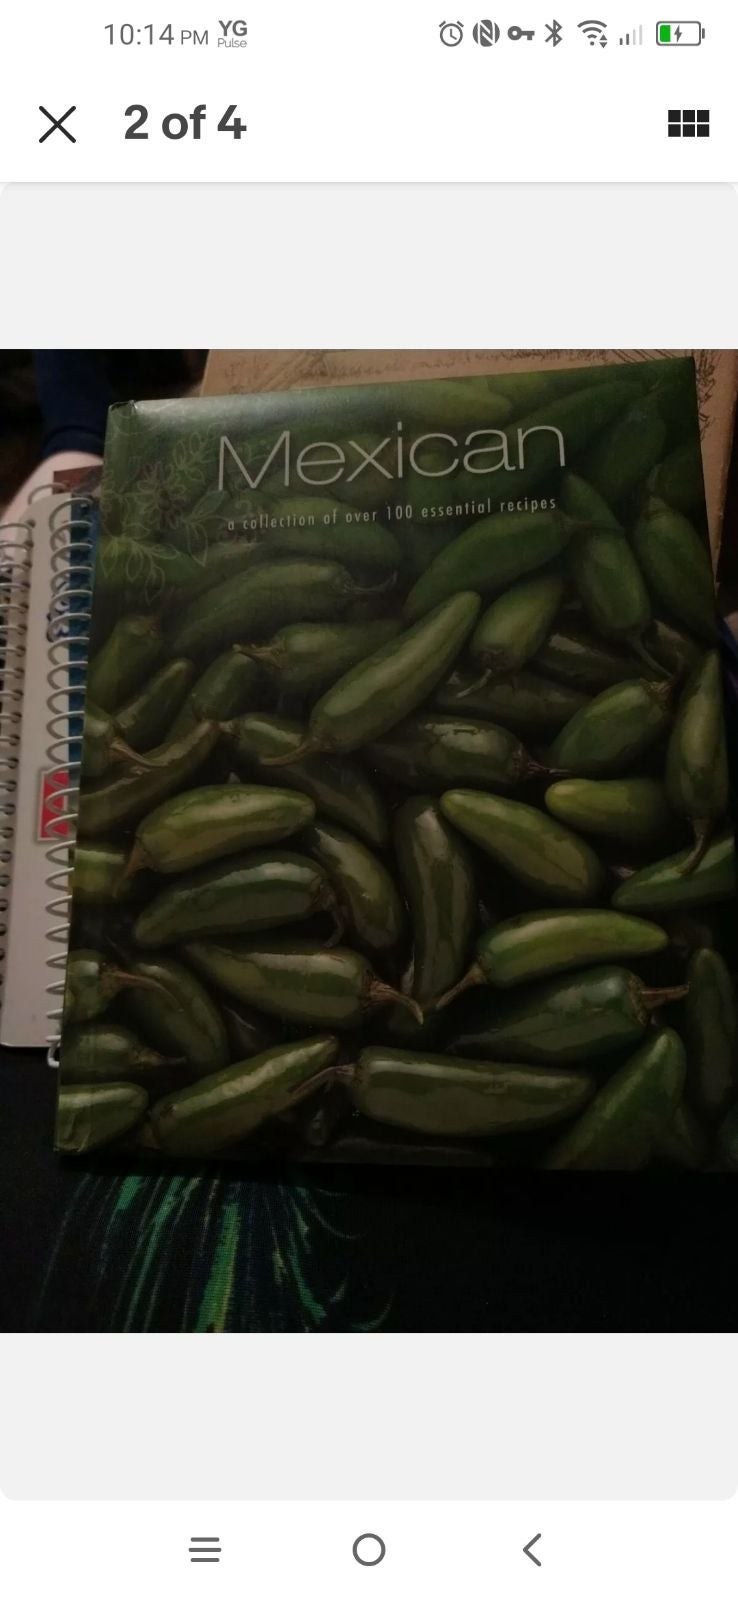 Mexican: A Collection of over 100 recipe